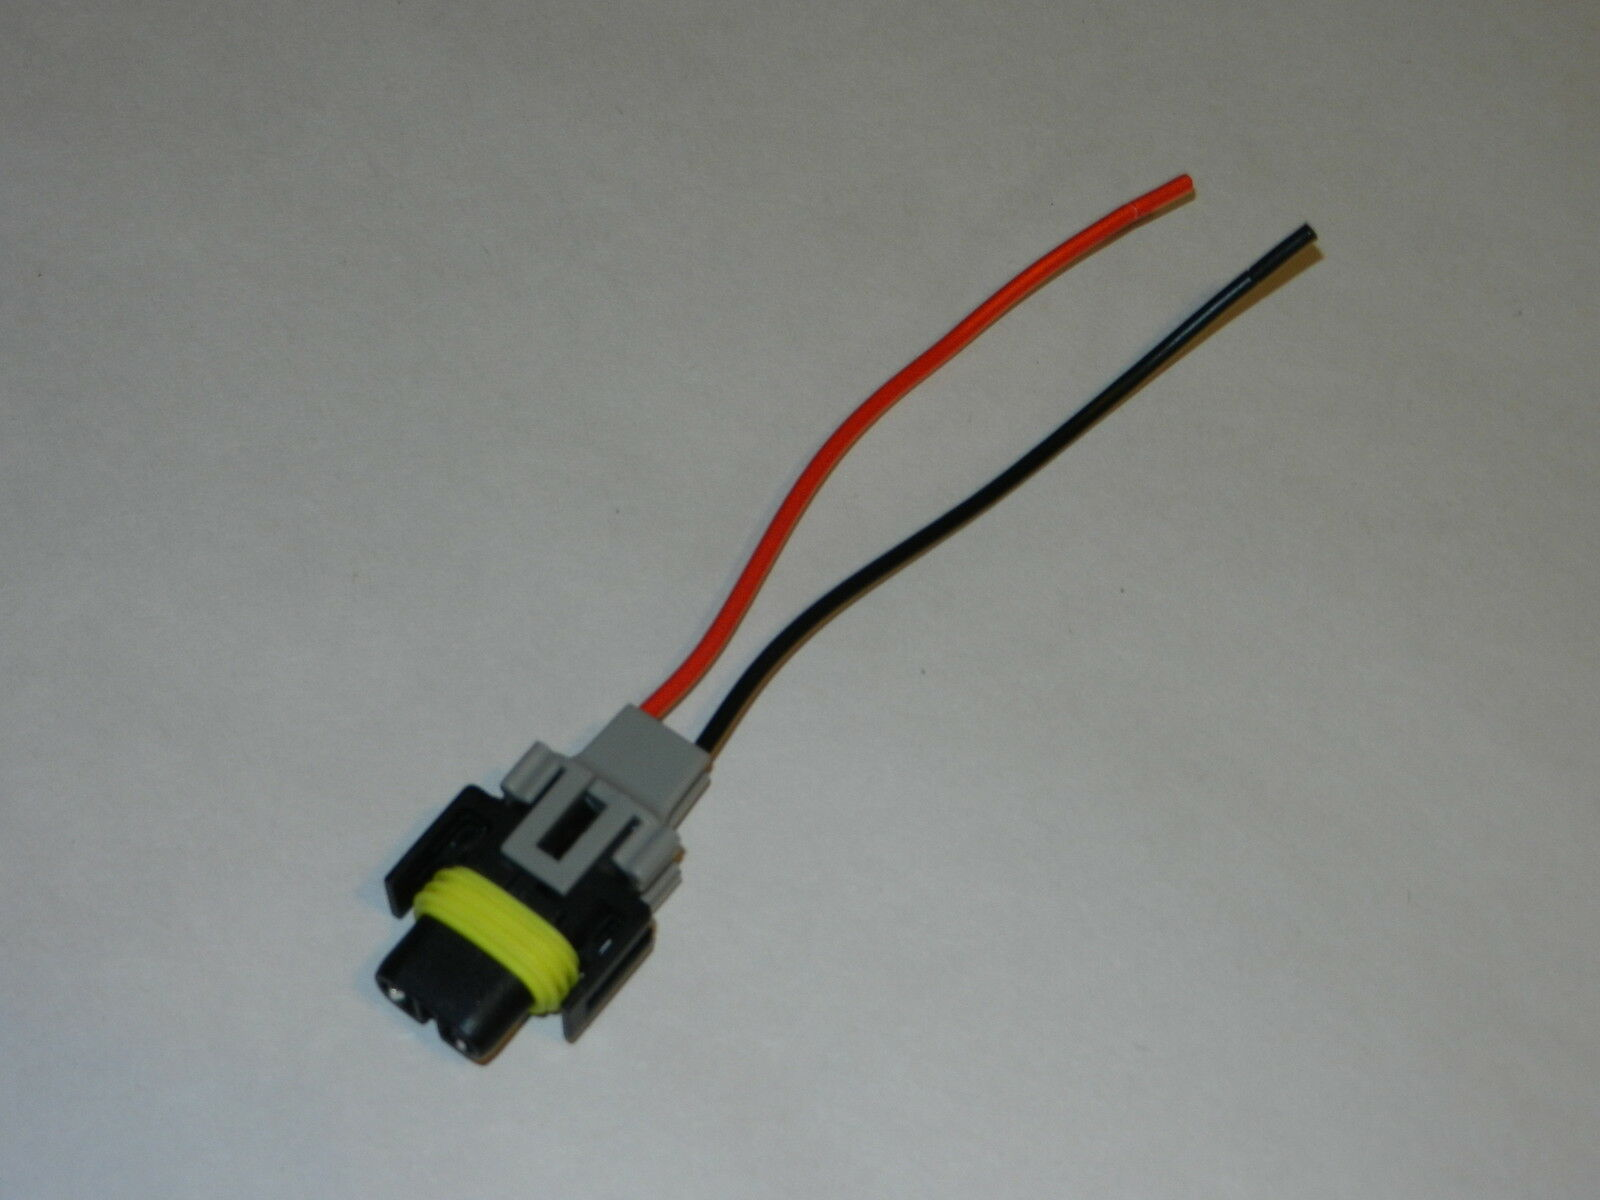 Vss Vehicle Speed Sensor Connector Wiring Harness Plug Gm Tpi Tbi 700r4 1 Of 1free Shipping